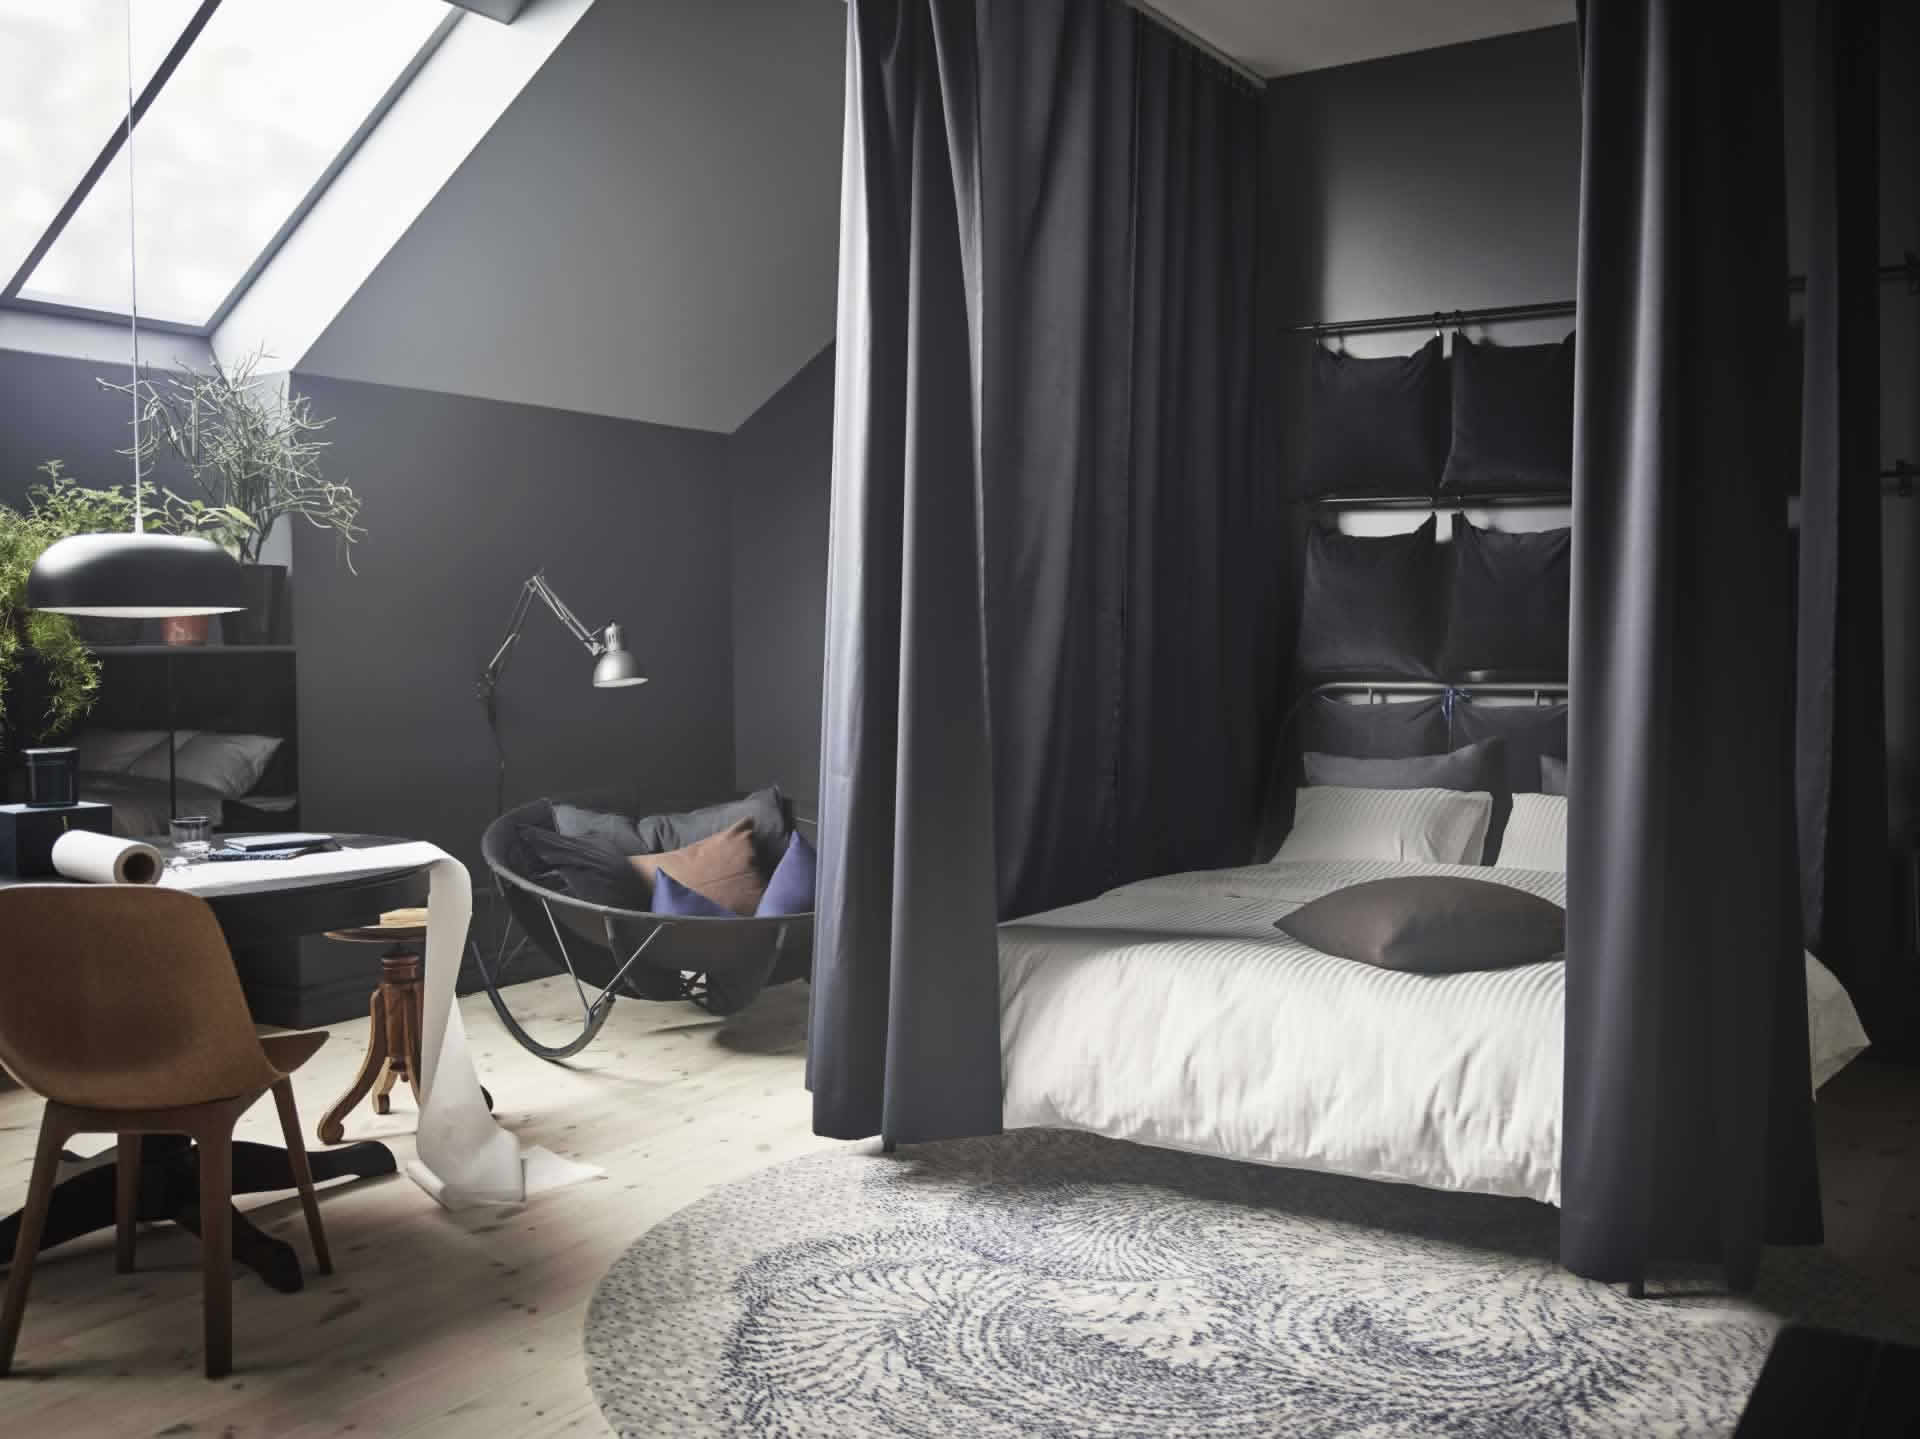 IKEA Ideas - A stay-all-day bedroom sanctuary